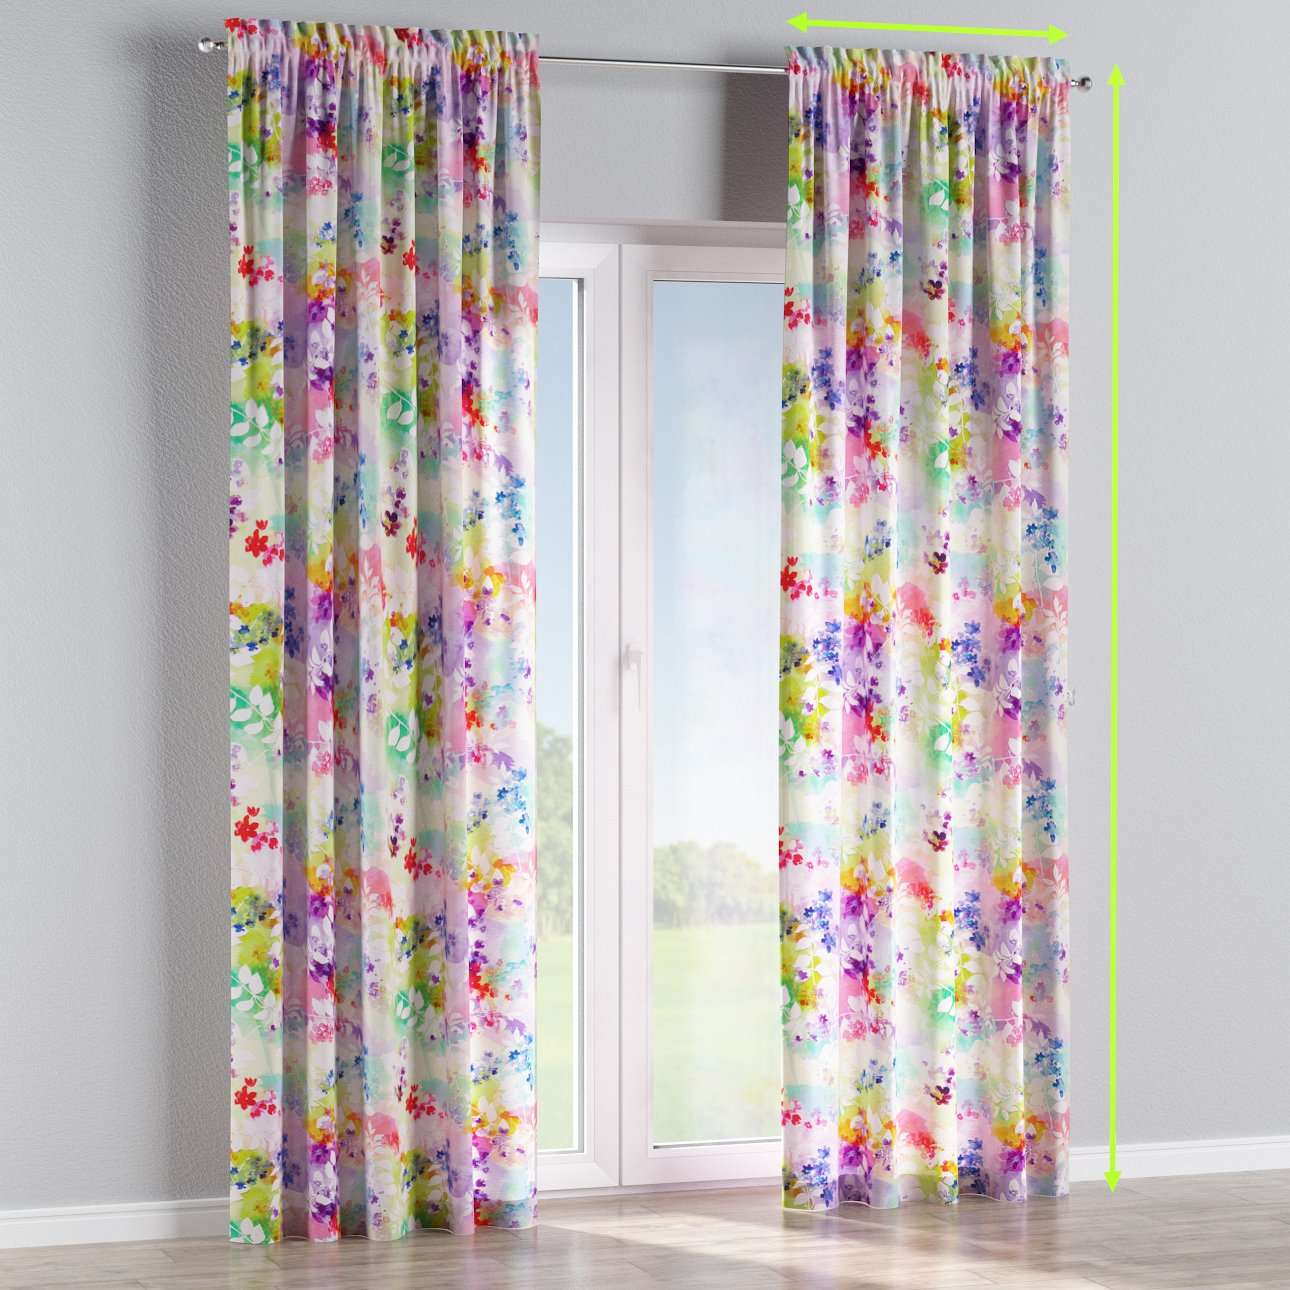 Slot and frill curtains in collection Monet, fabric: 140-07